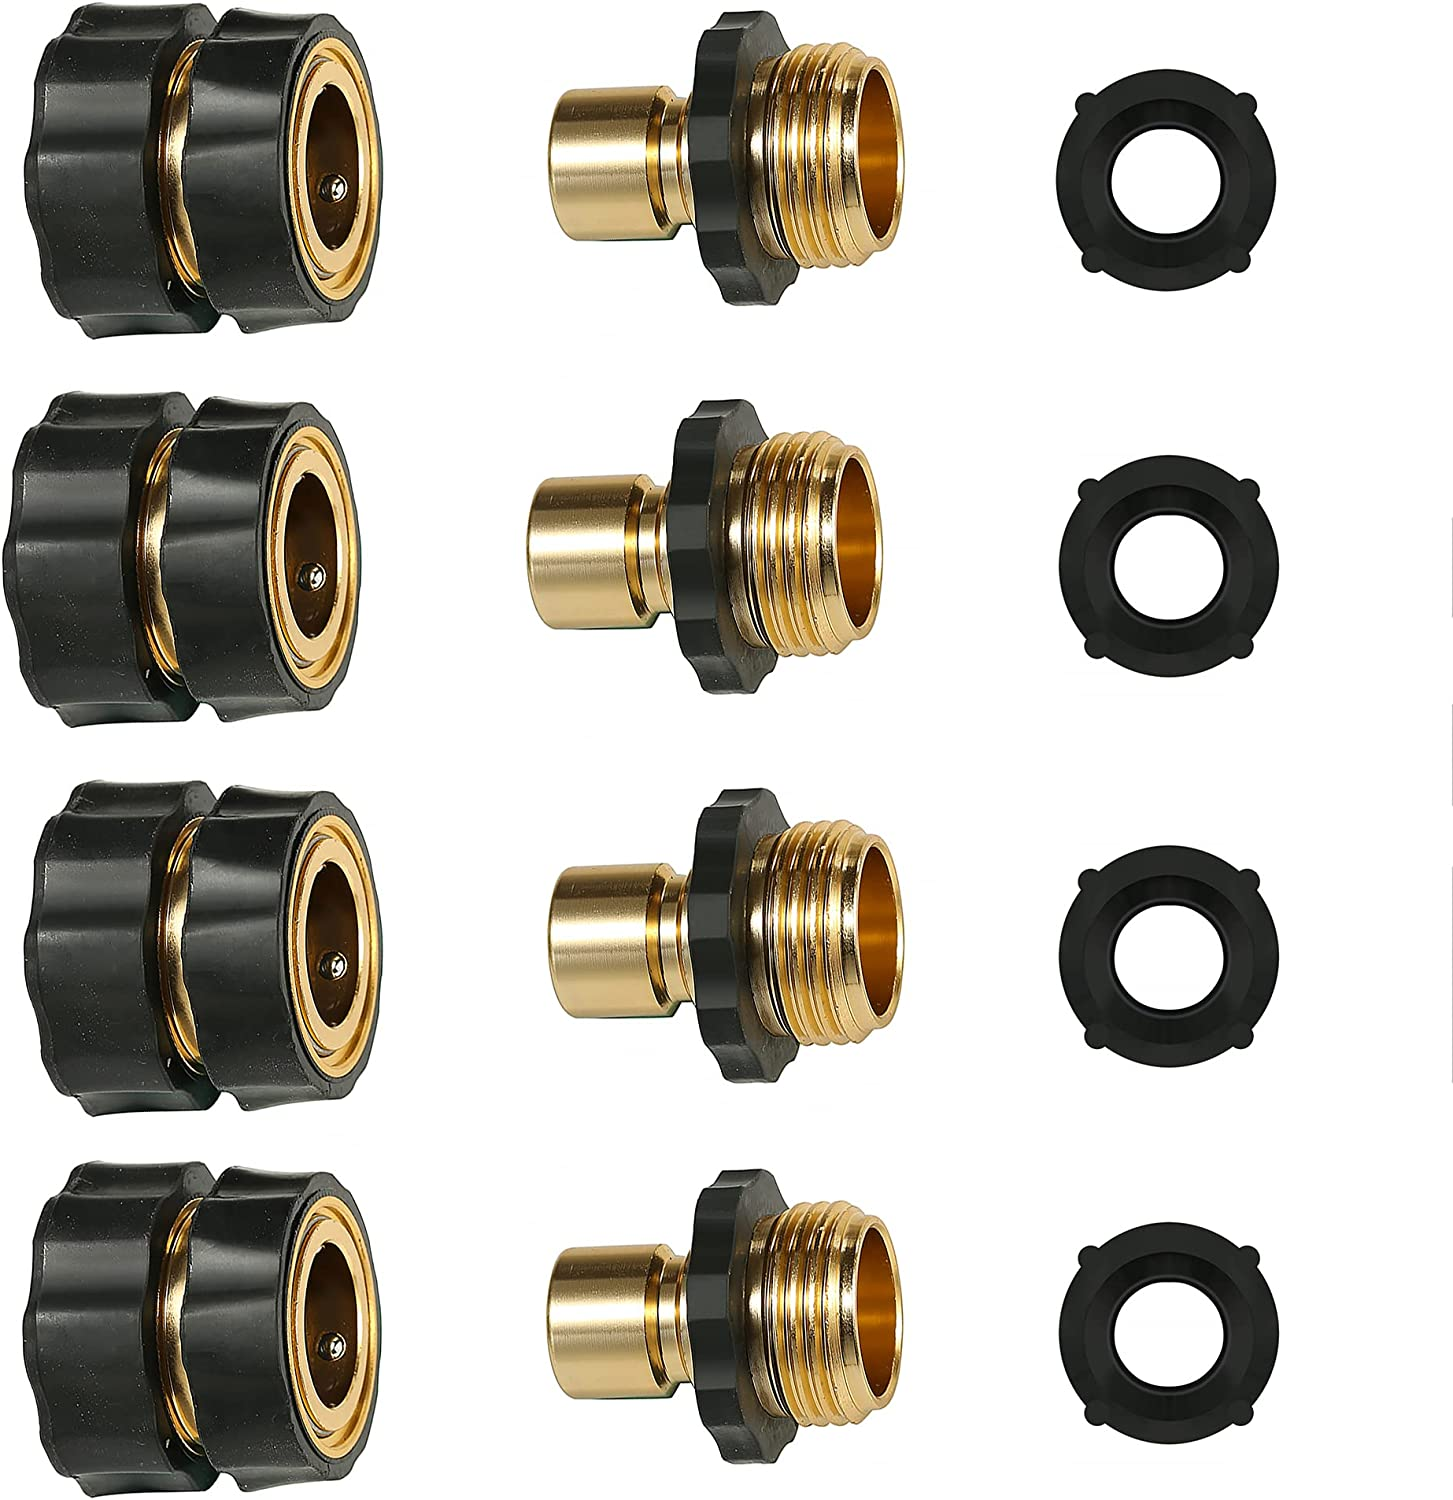 CrocSee 3/4 Inch Garden Hose Quick Connect, Male and Female Water Hose Connectors Fittings, 4 Set